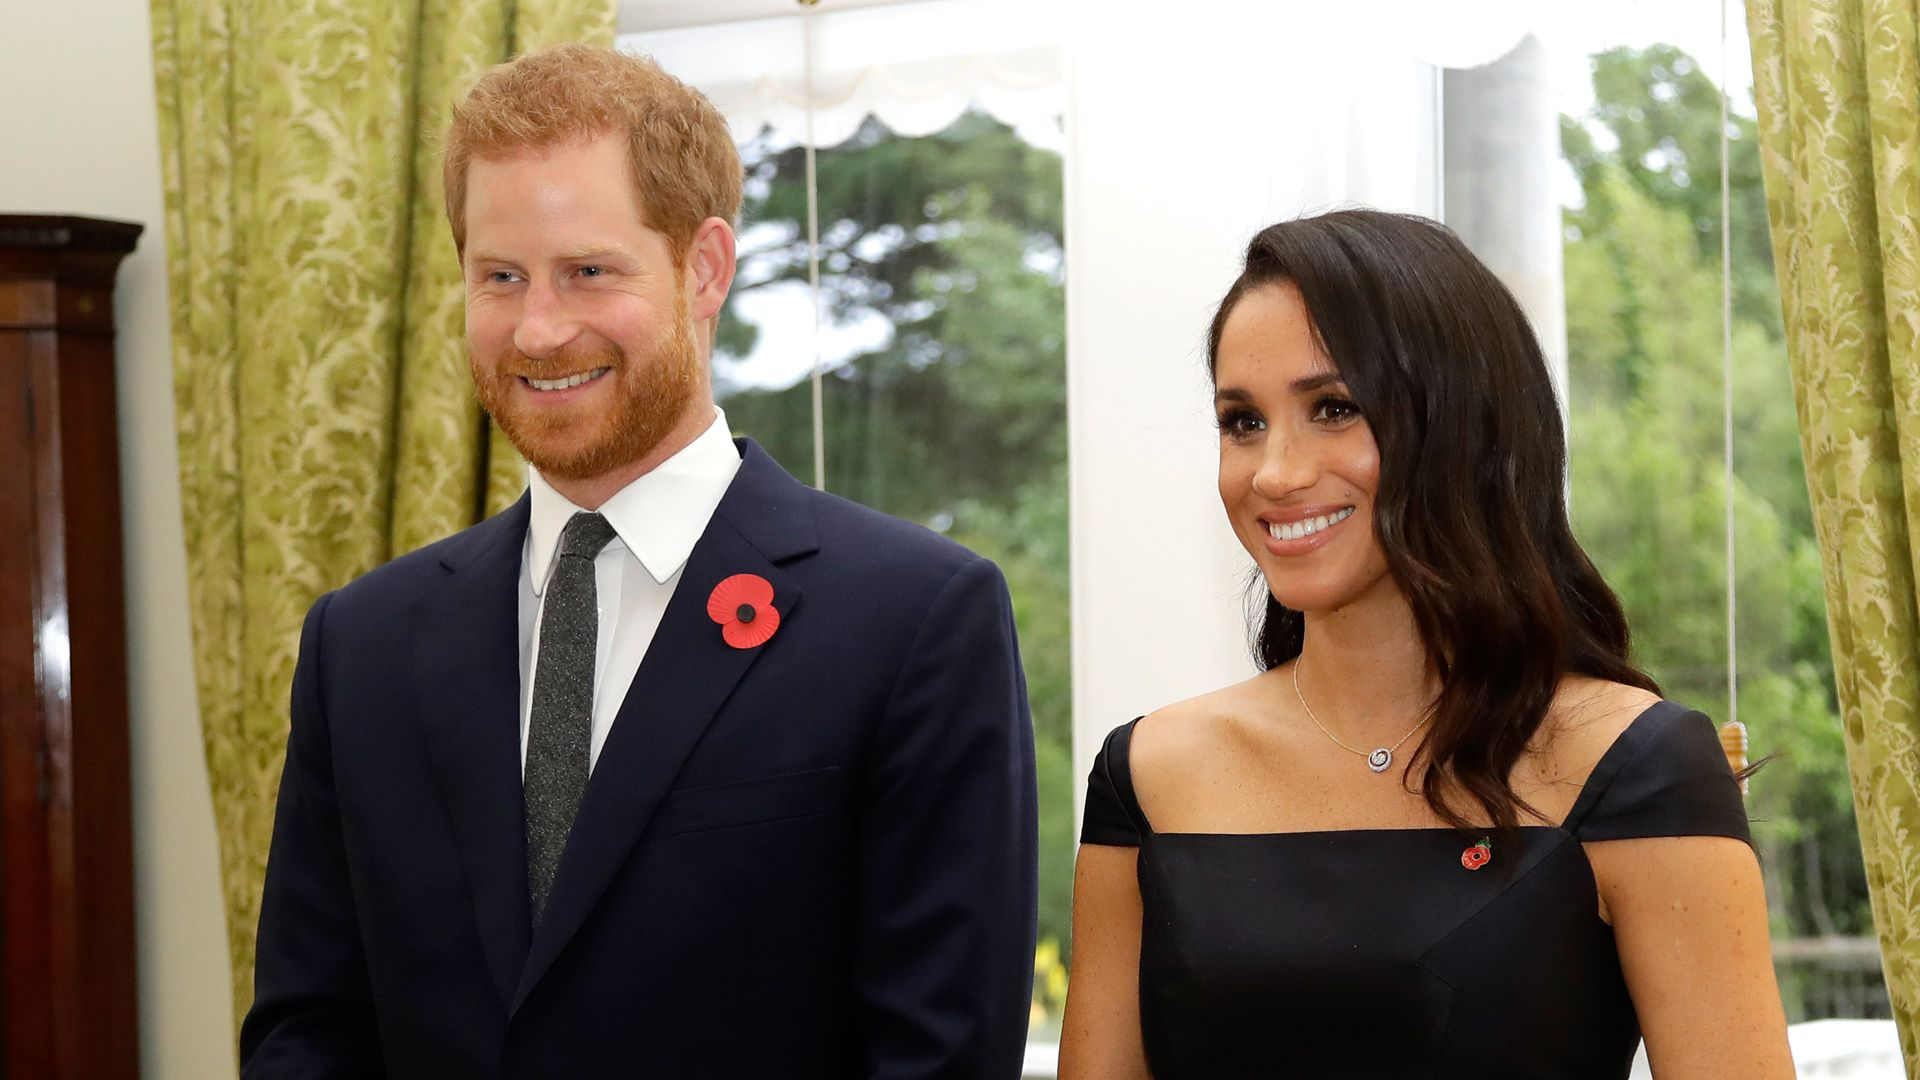 """So Apparently Meghan Markle and Prince Harry """"Have a Back-Up Plan in Place"""""""